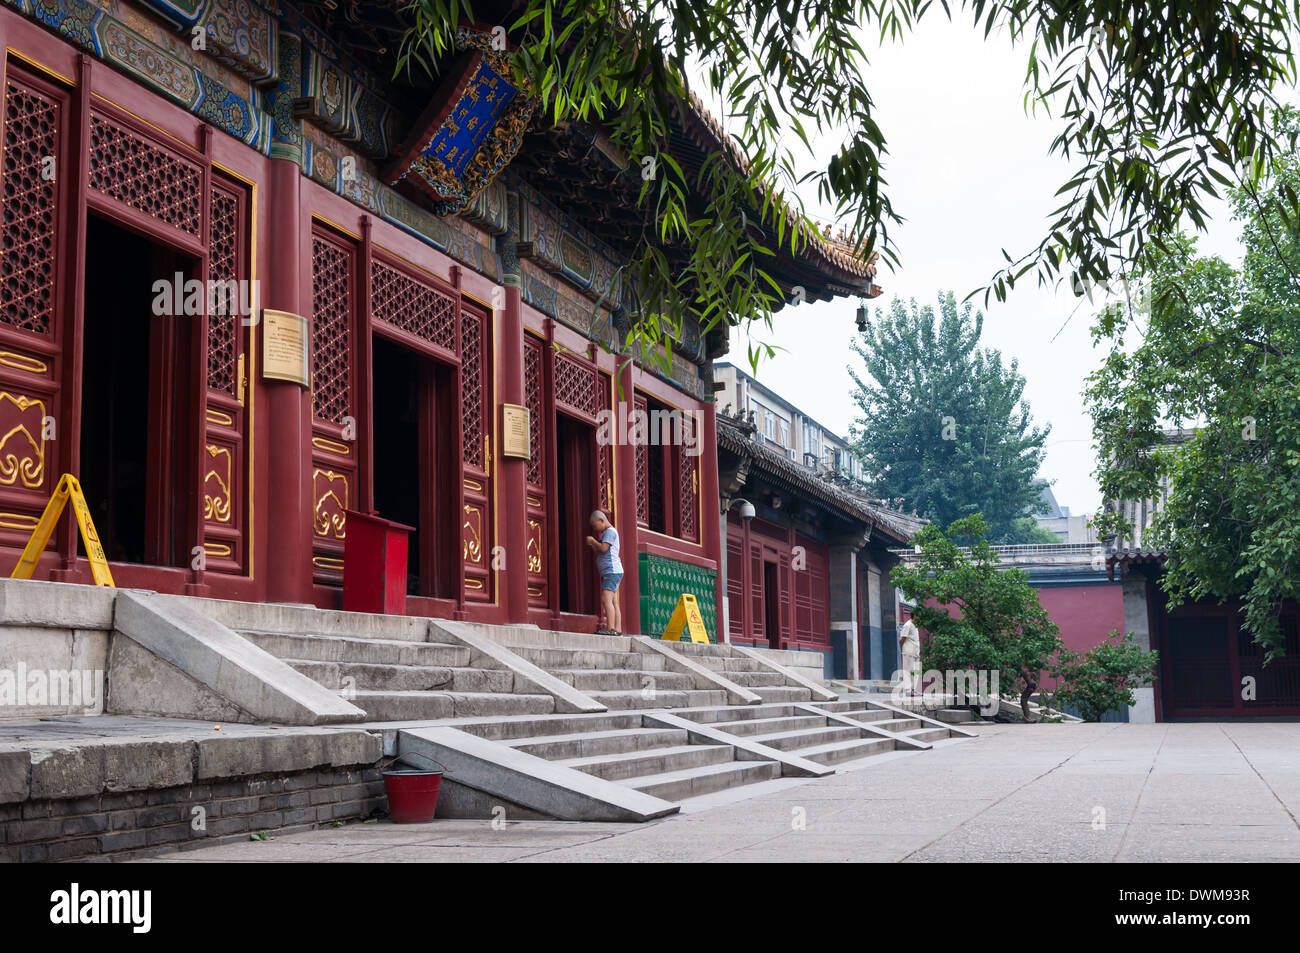 Traditional Chinese architecture at Yonghegong Lama Temple in Beijing, China. - Stock Image